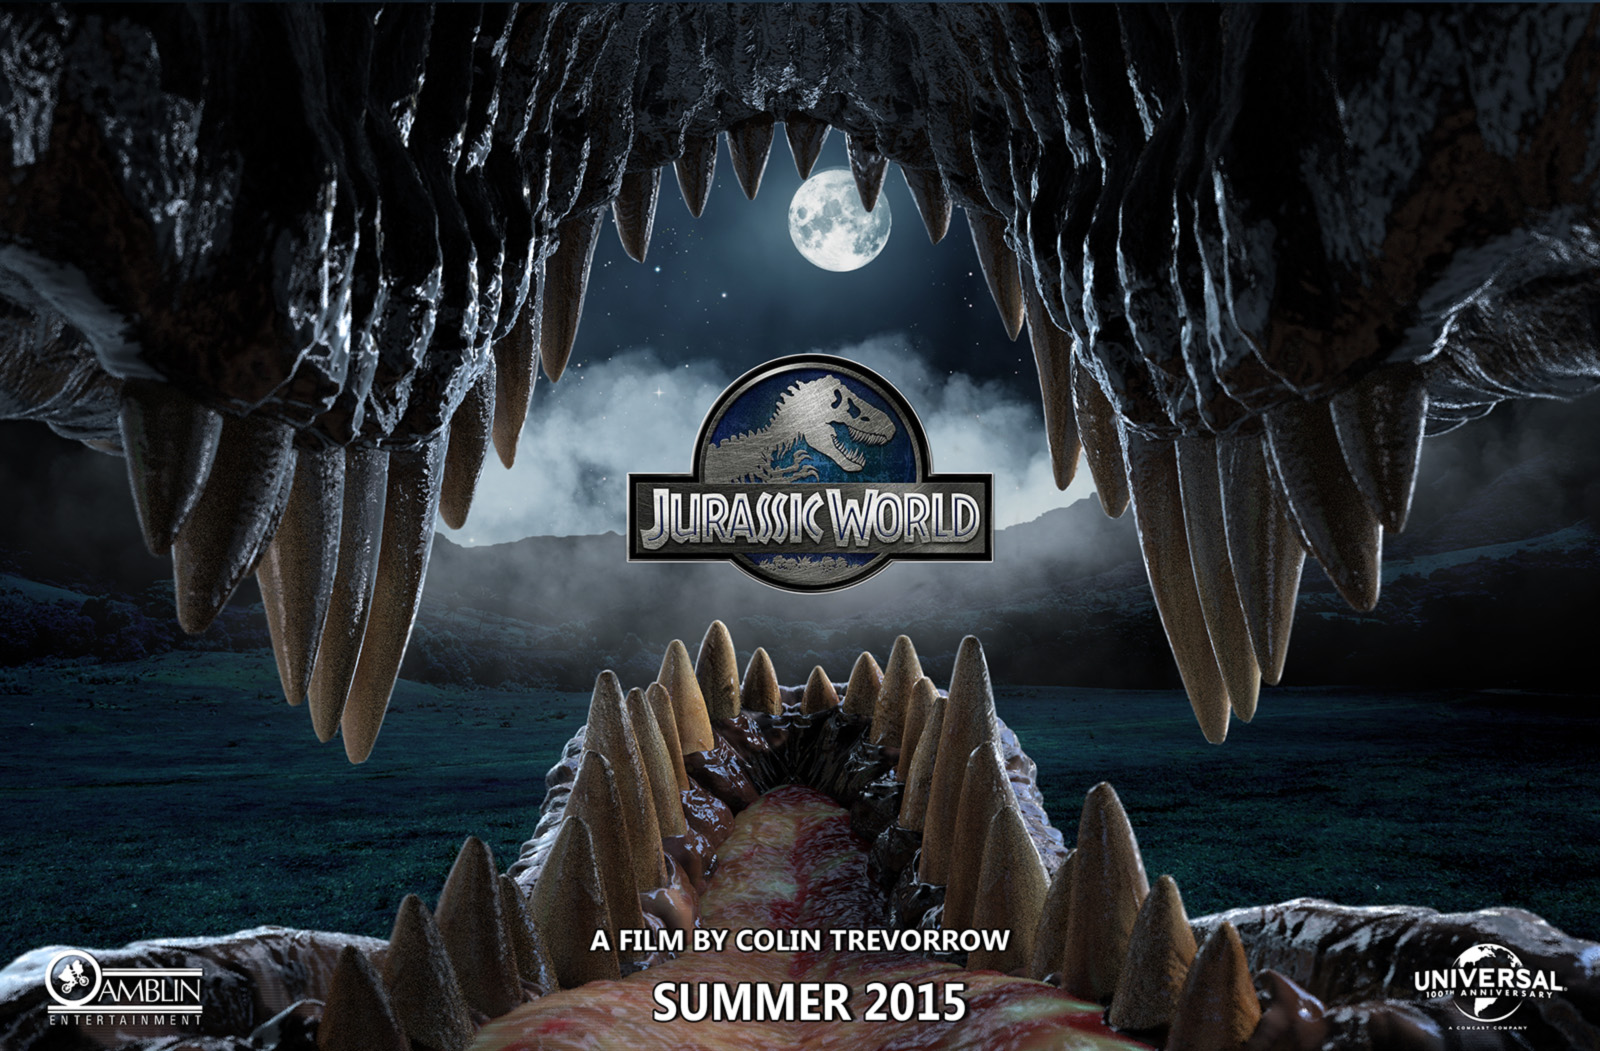 jurassic-world-rumored-jurassic-world-trailer-description